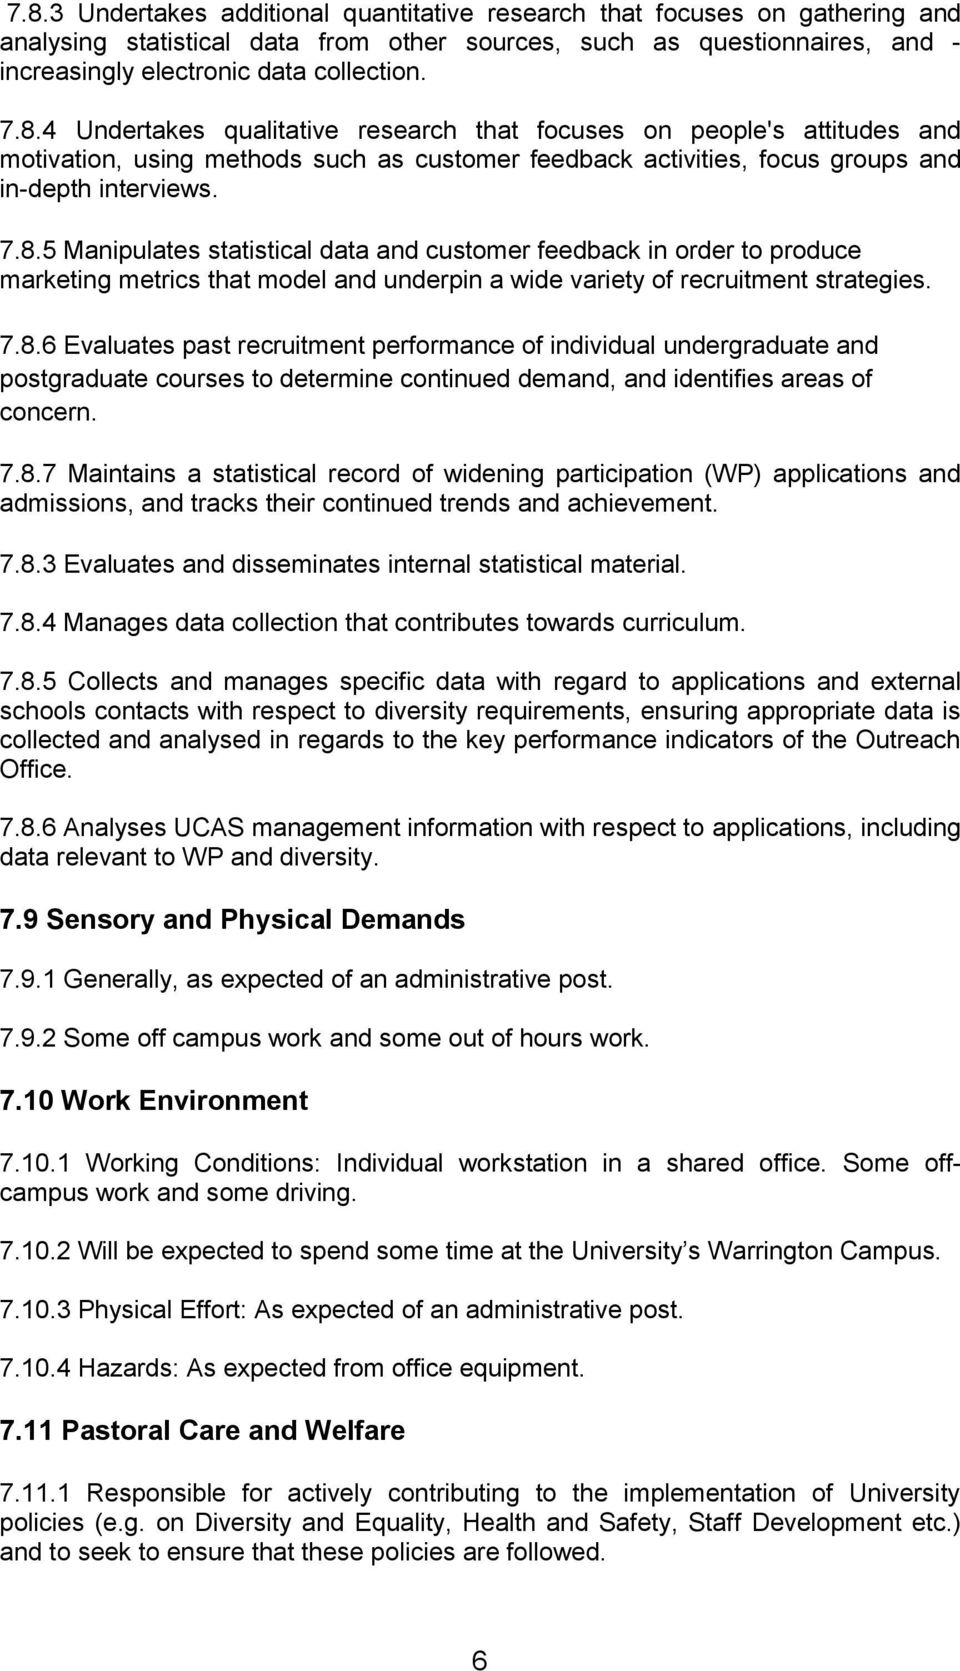 7.8.6 Evaluates past recruitment performance of individual undergraduate and postgraduate courses to determine continued demand, and identifies areas of concern. 7.8.7 Maintains a statistical record of widening participation (WP) applications and admissions, and tracks their continued trends and achievement.